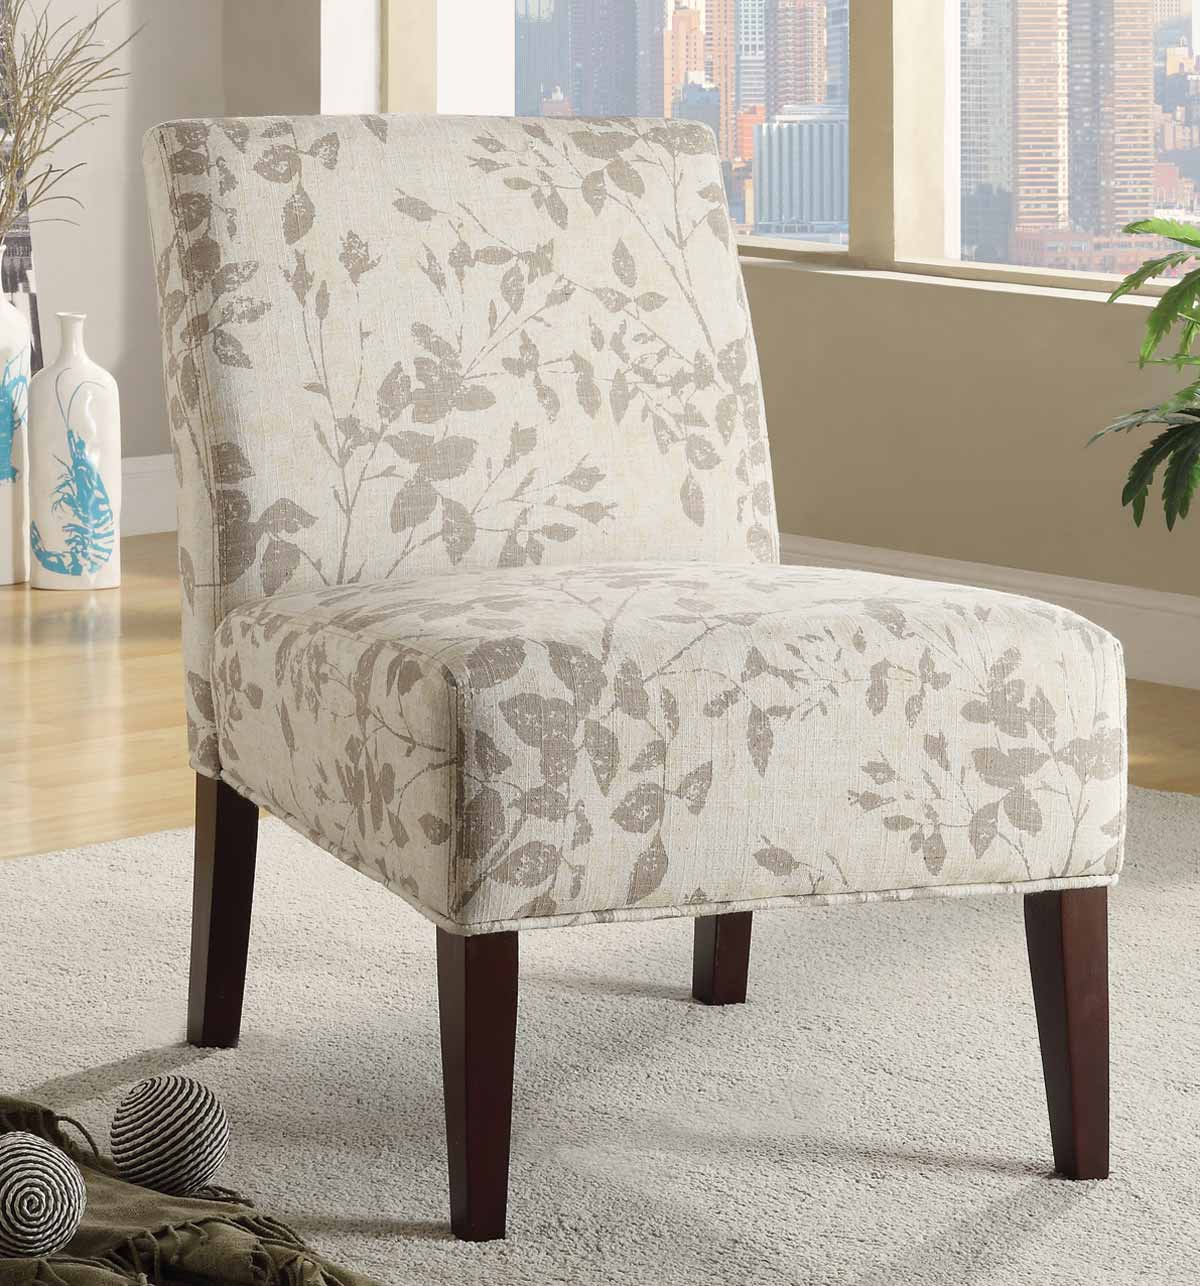 Coaster 902194 Accent Chair - Taupe/Beige Leaf Design